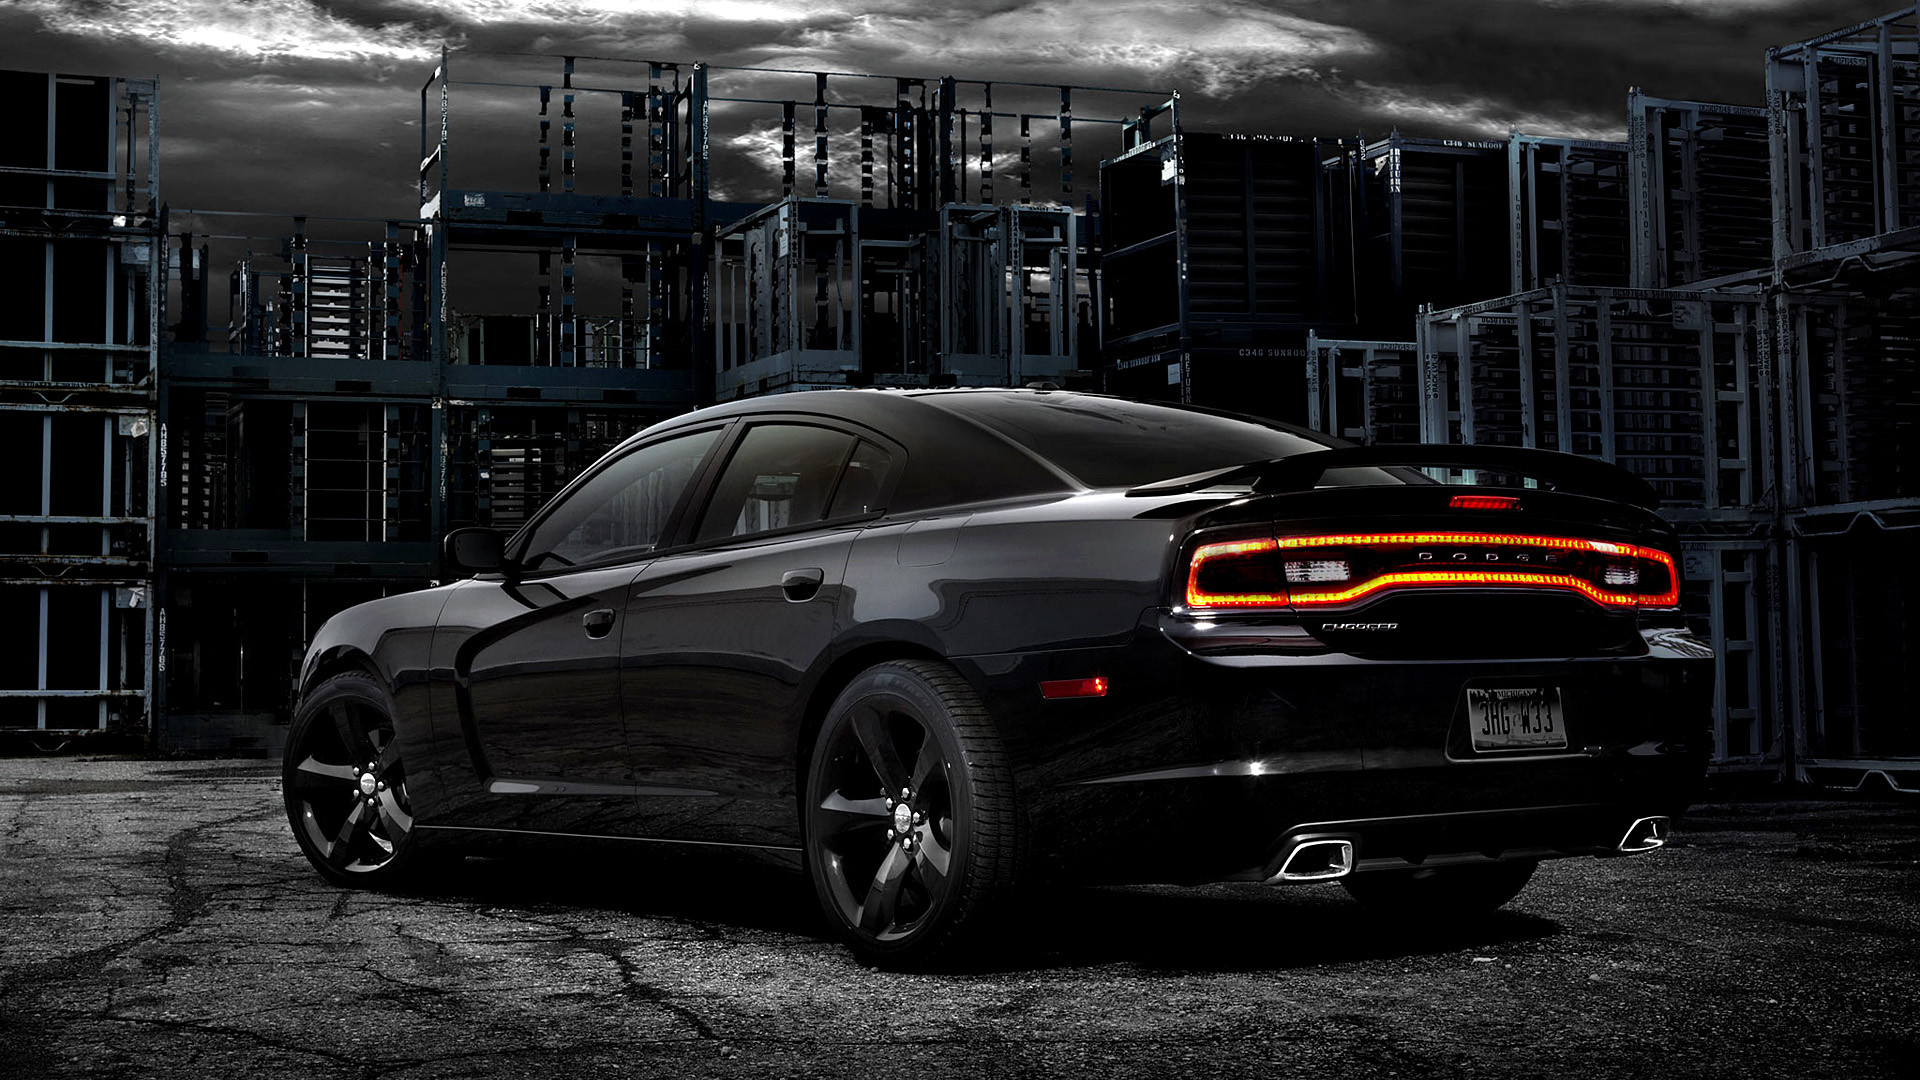 2012 Dodge Charger Blacktop picture